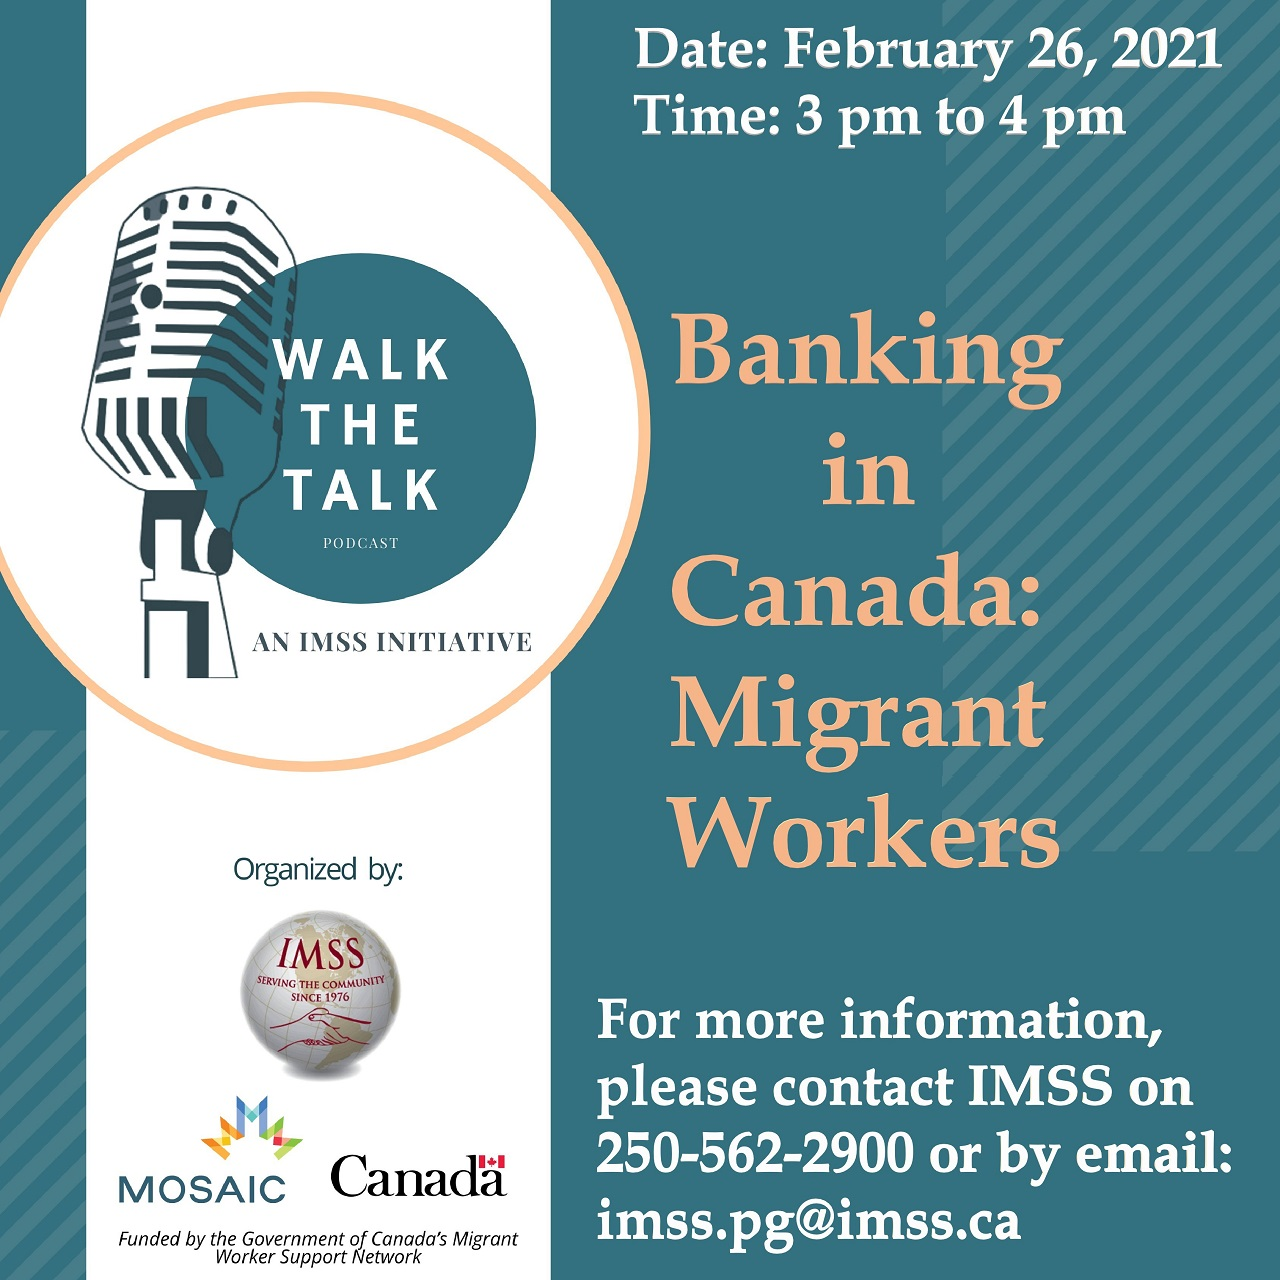 Banking in Canada: Migrant Workers